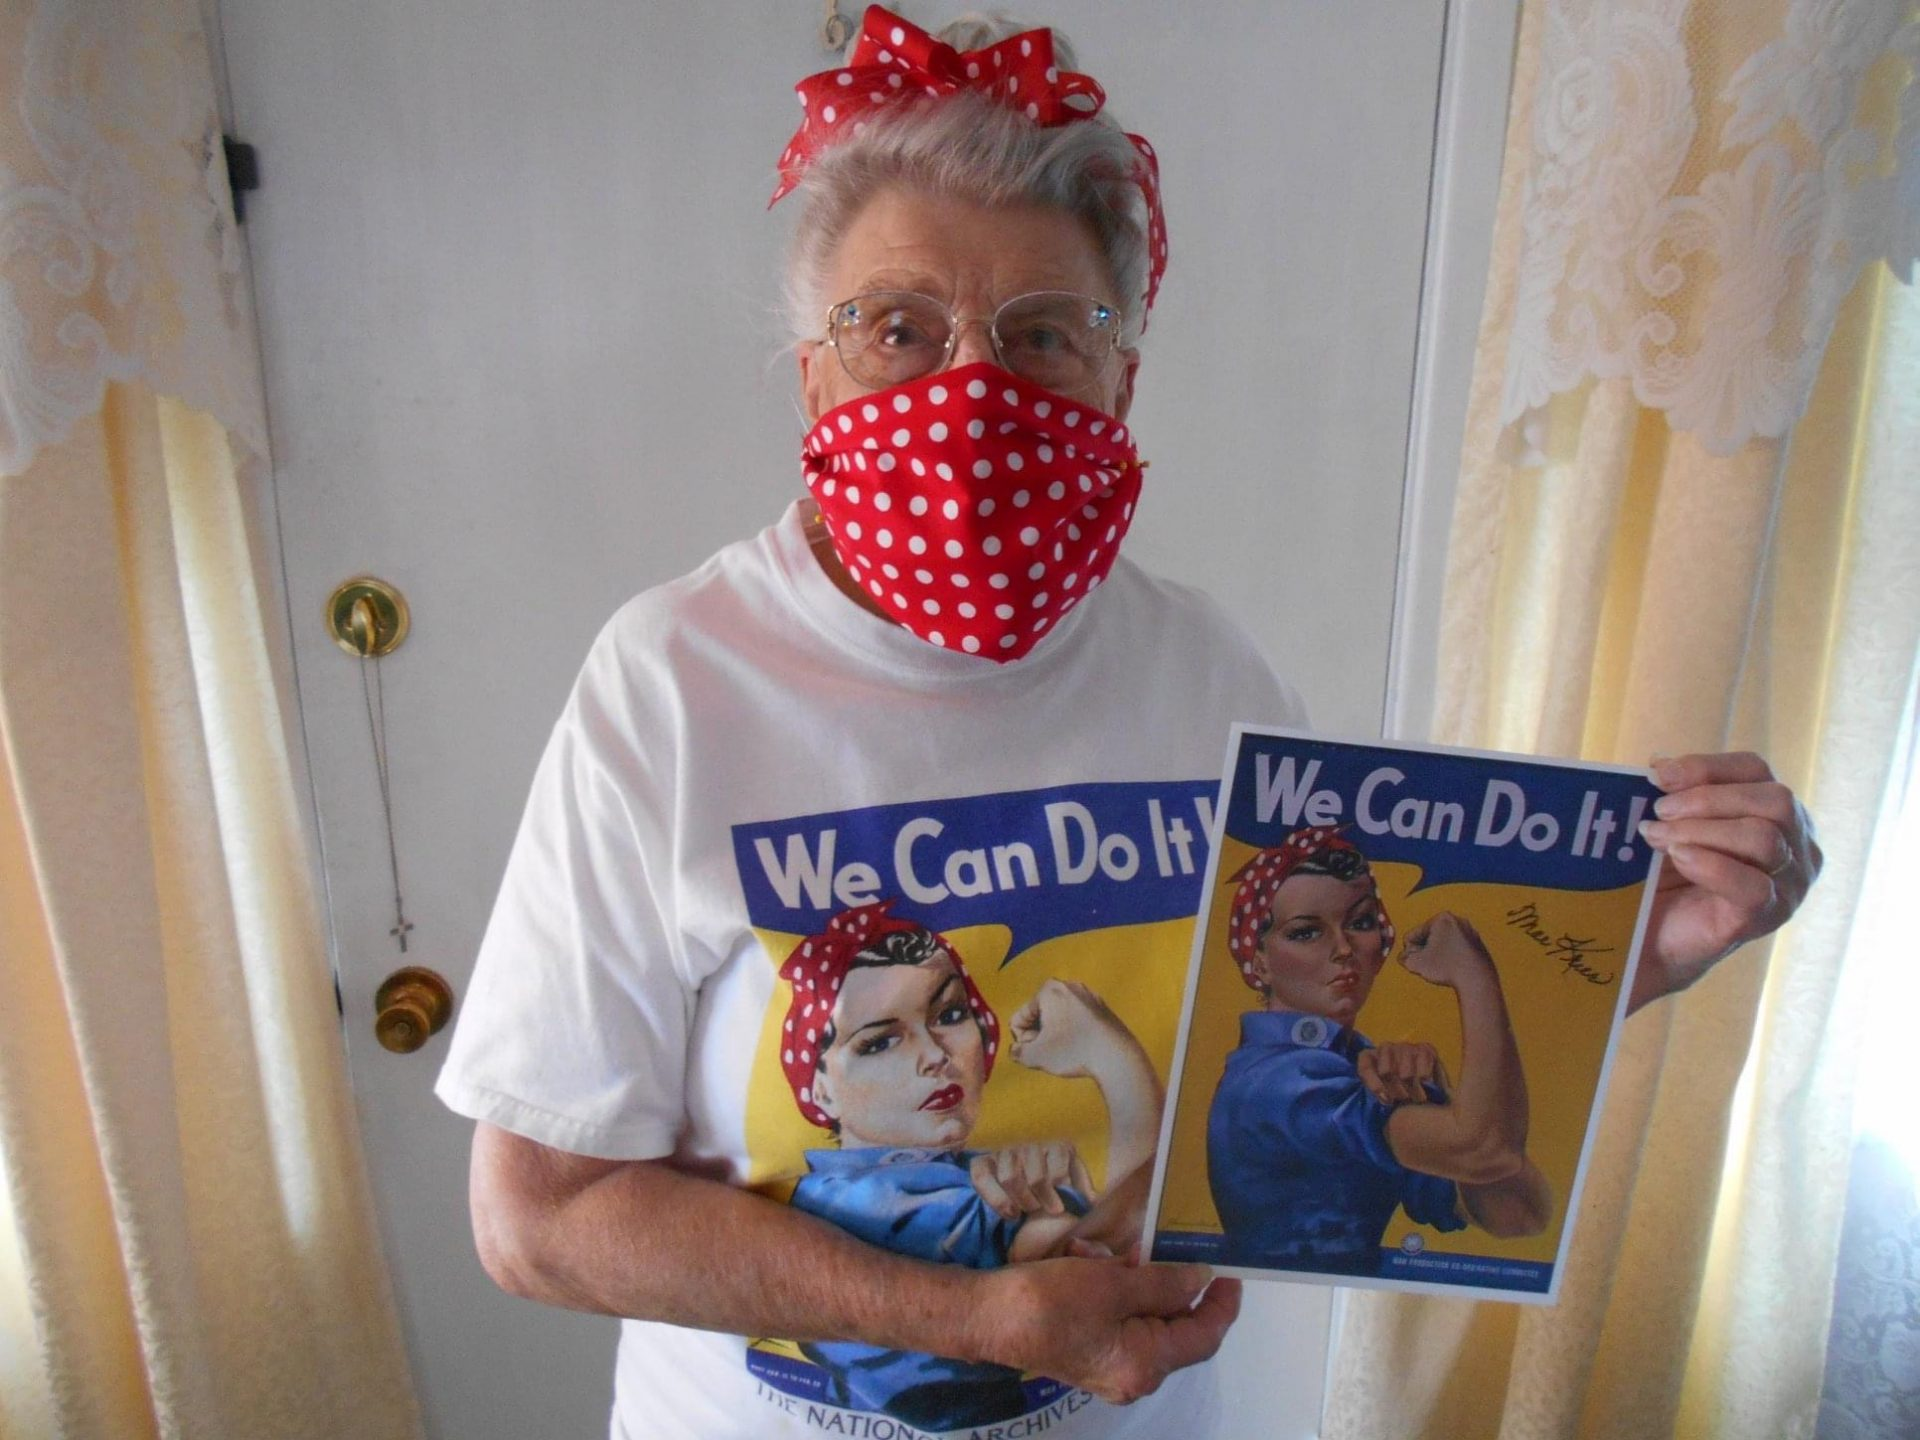 The Art of Covid- Rosie the Riveter